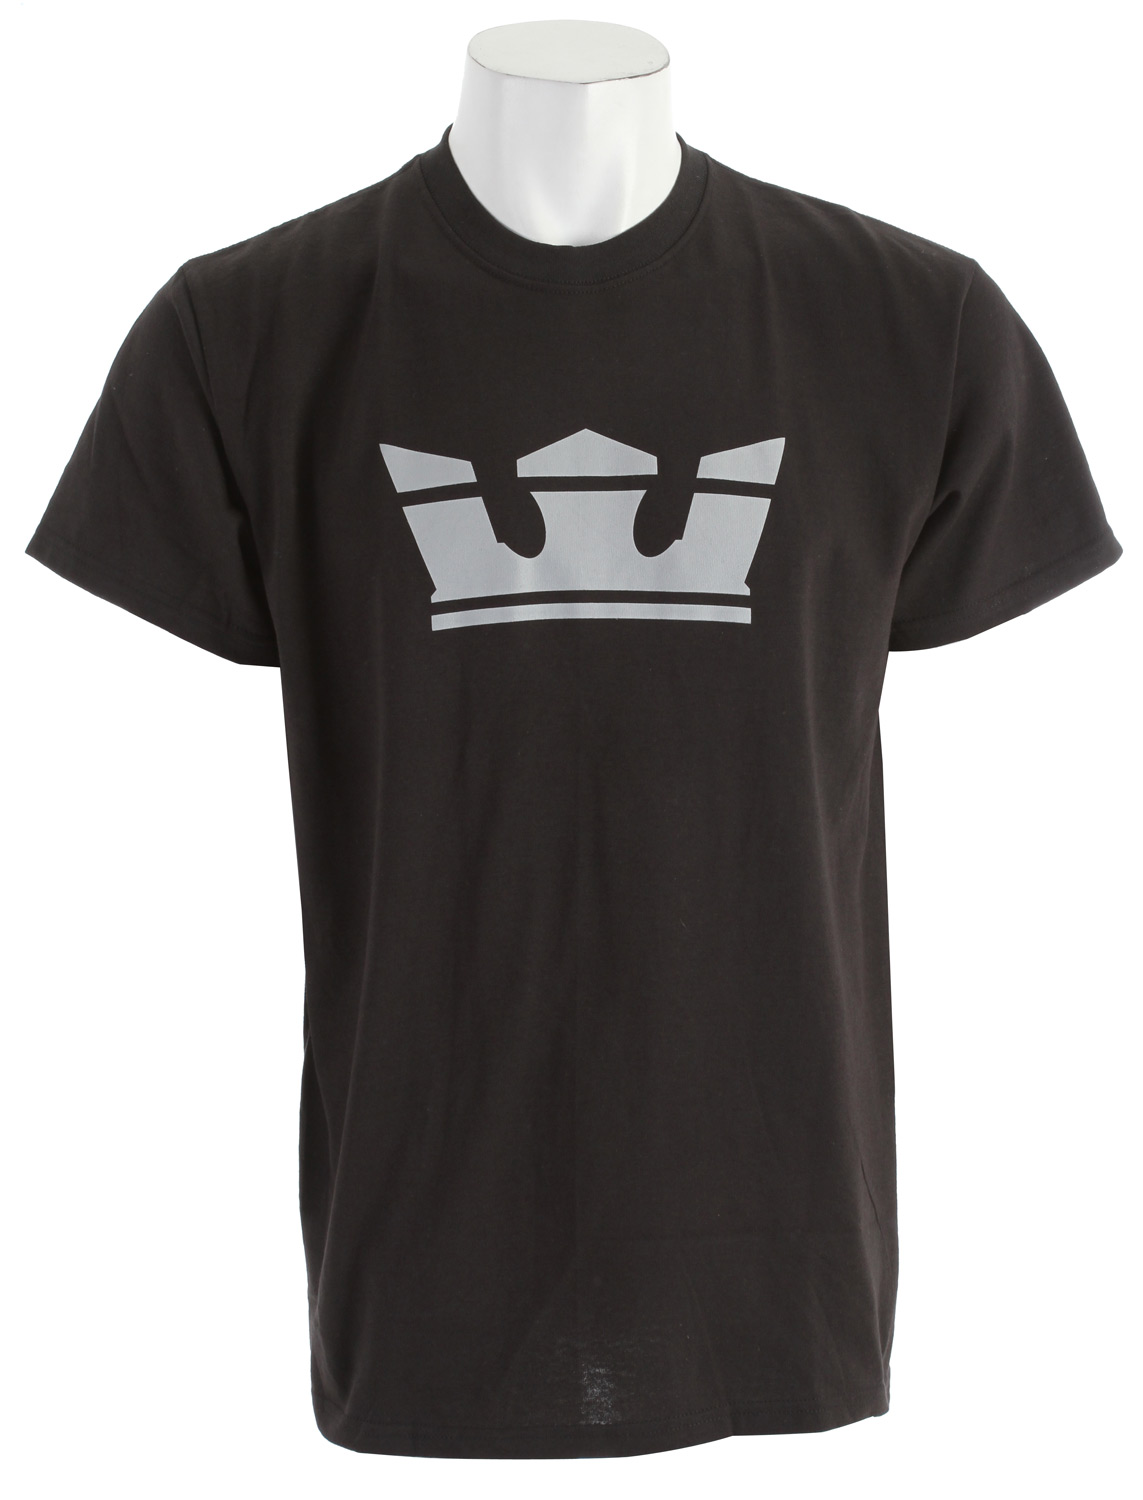 Key Features of The Supra Crown T-Shirt: Regular Fit Crew Neck Short Sleeve - $23.95